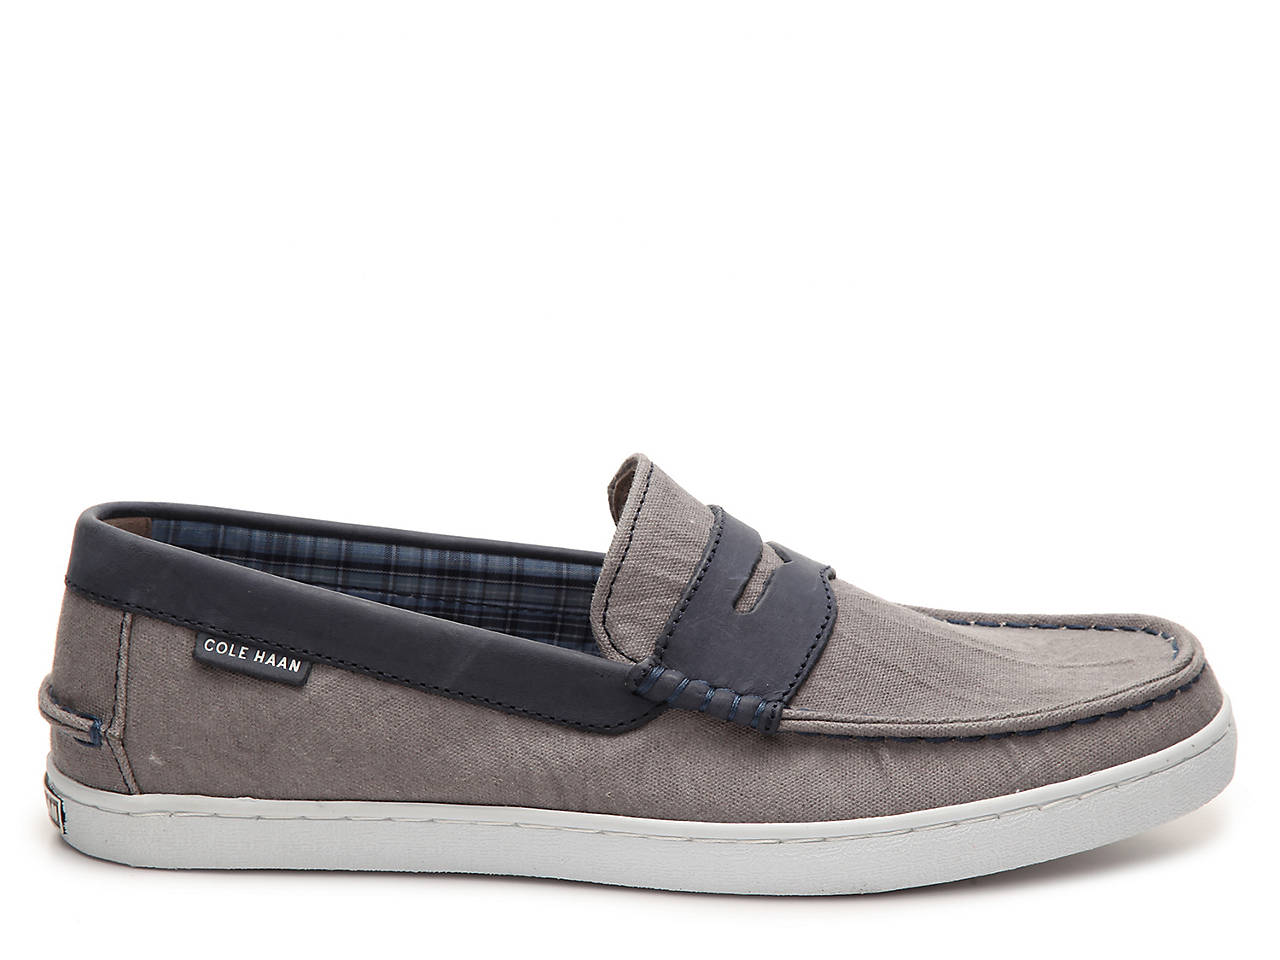 d3497e3dc3e Cole Haan Pinch Weekender Penny Loafer Men s Shoes